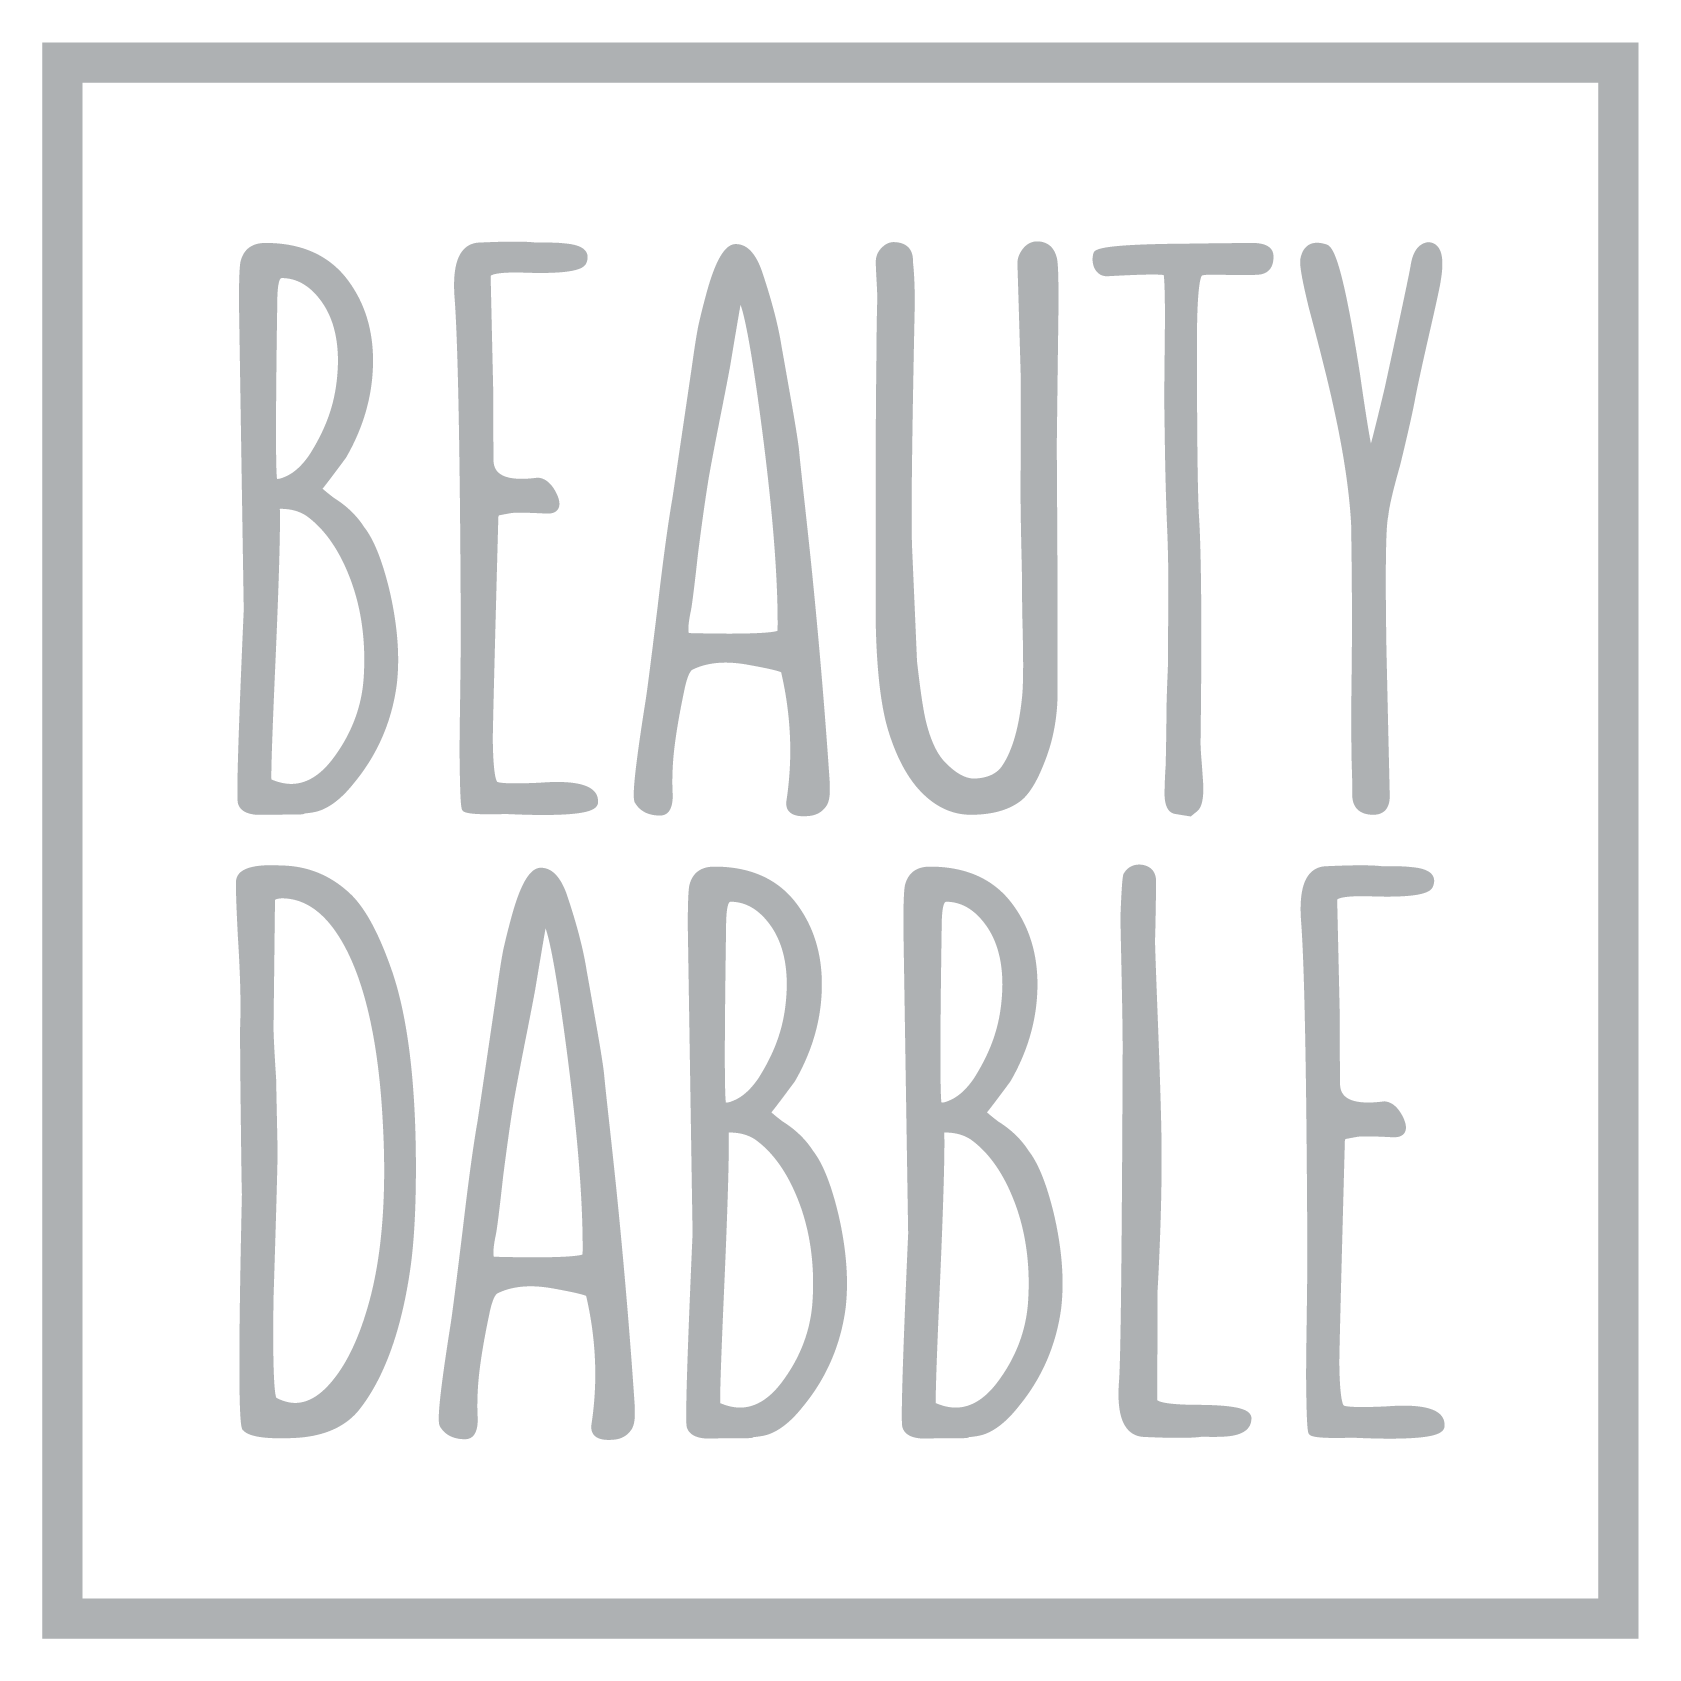 BeautyDabble